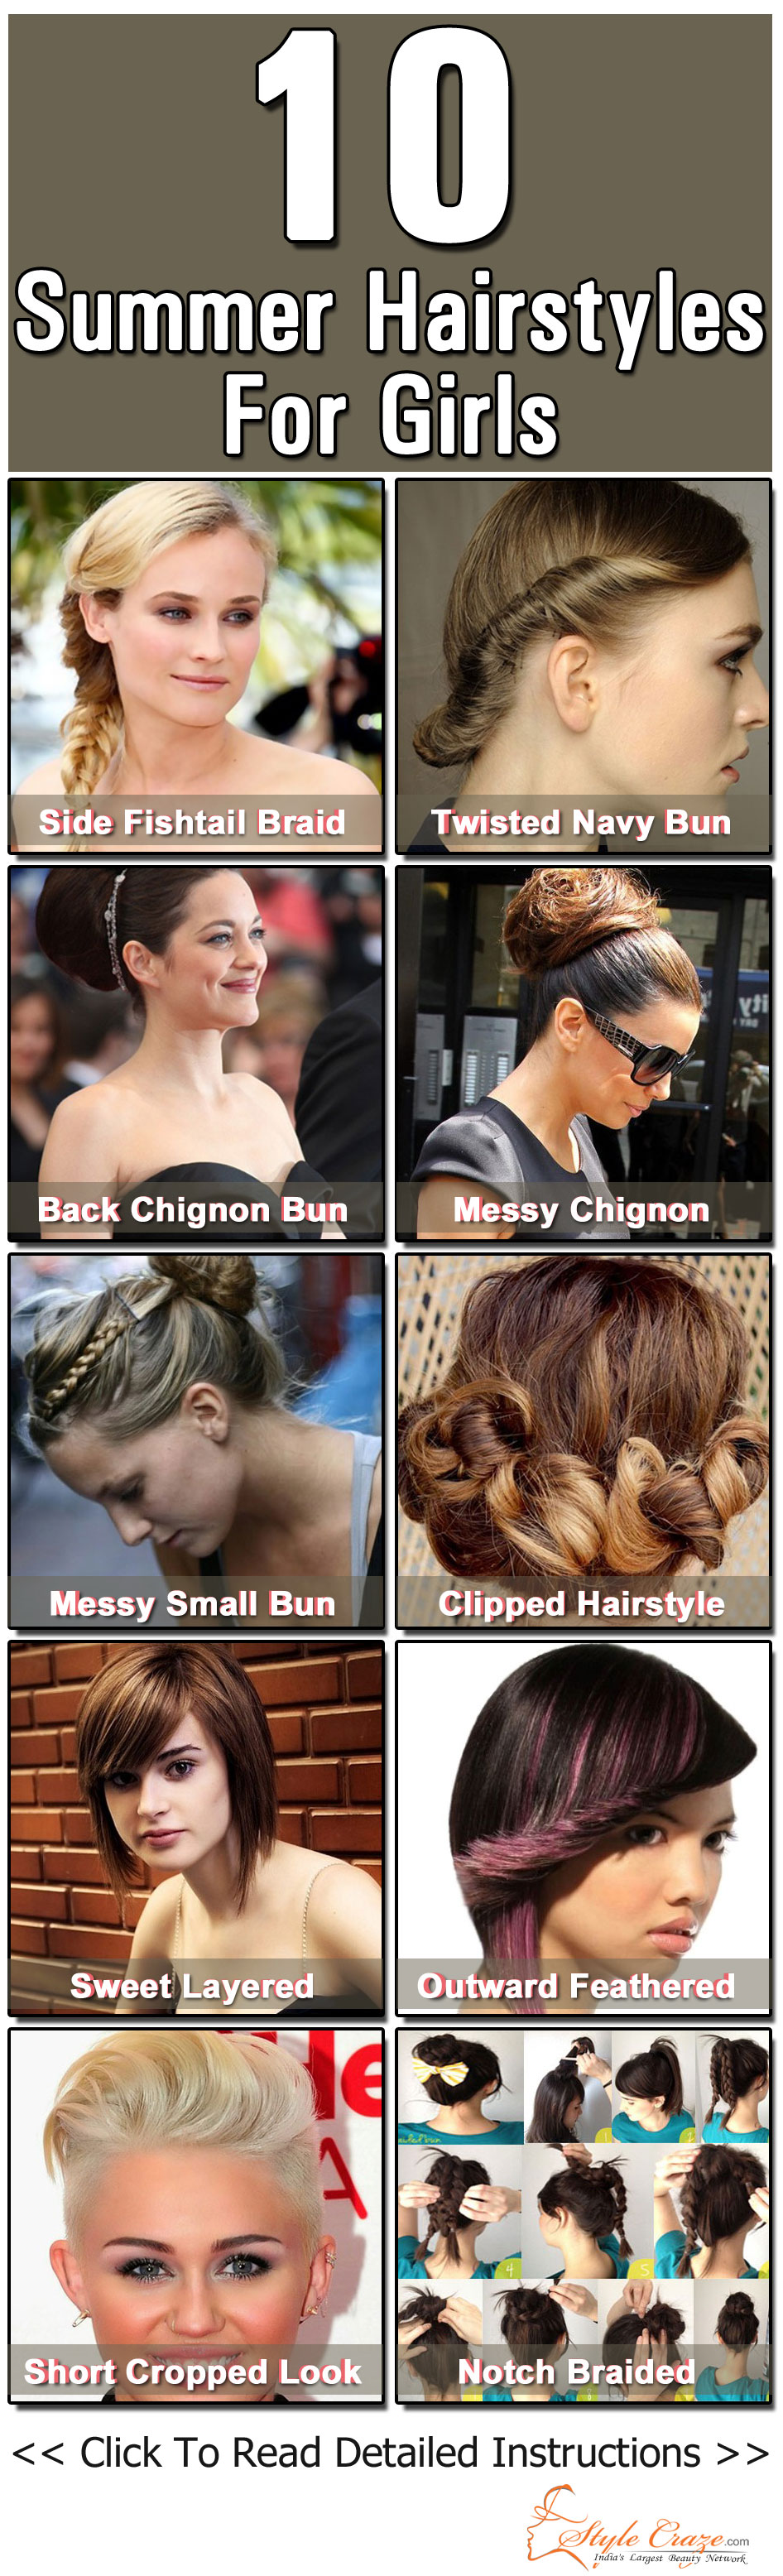 Top 10 Summer Hairstyles For Girls